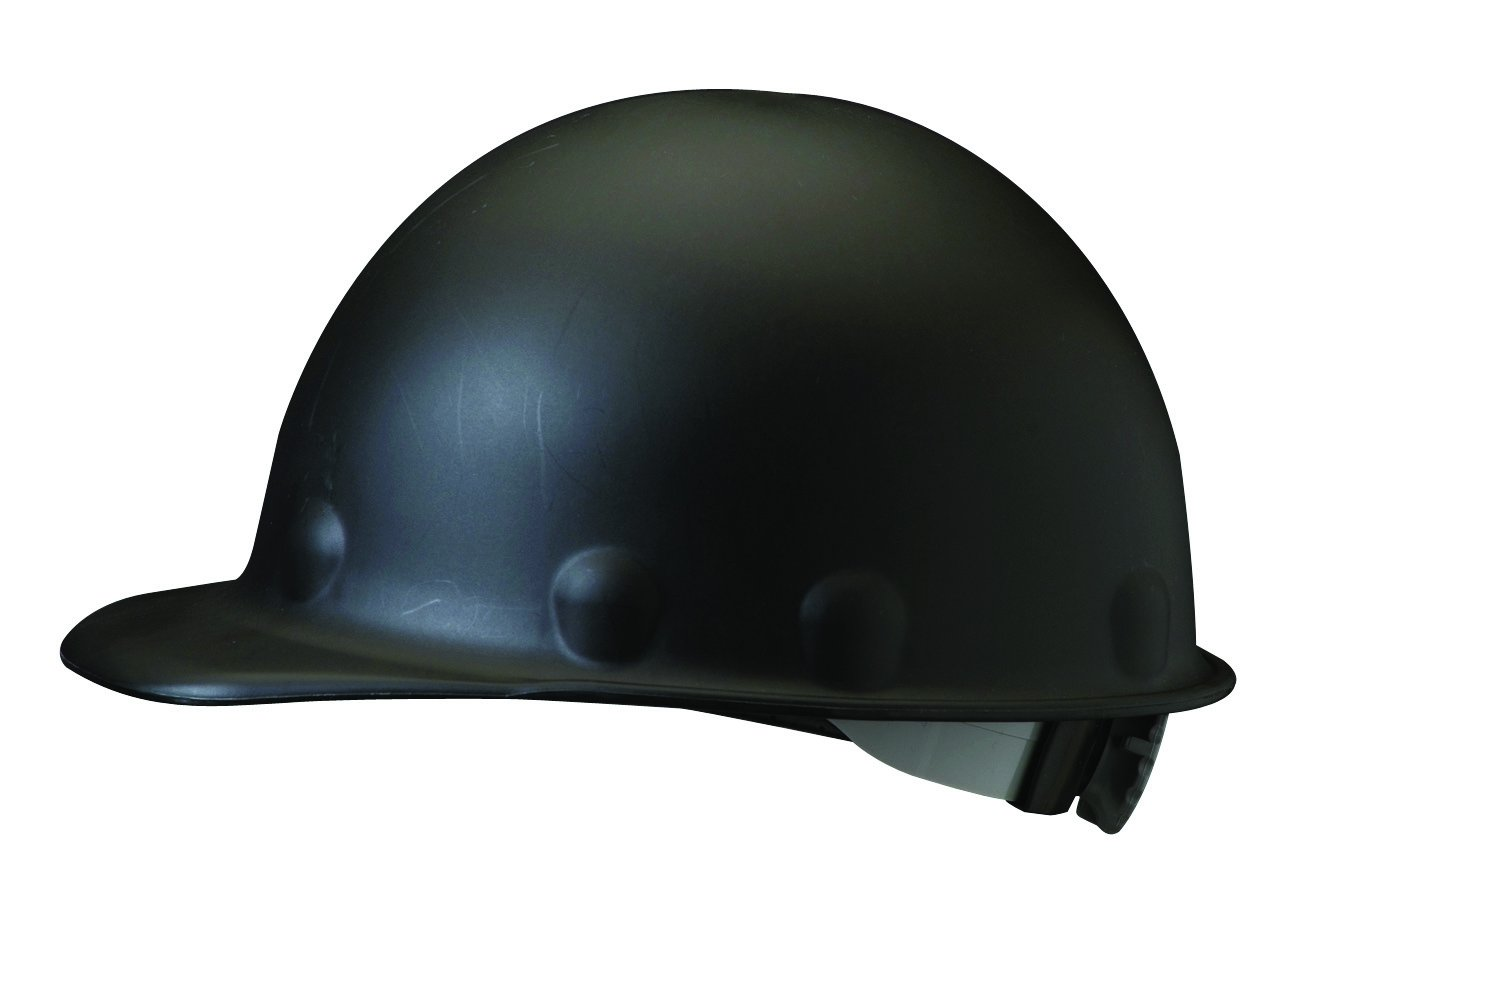 Fibre-Metal Hard Hat Injection Molded Roughneck Fiberglass with 8-Point Ratchet Suspension, Black by Honeywell